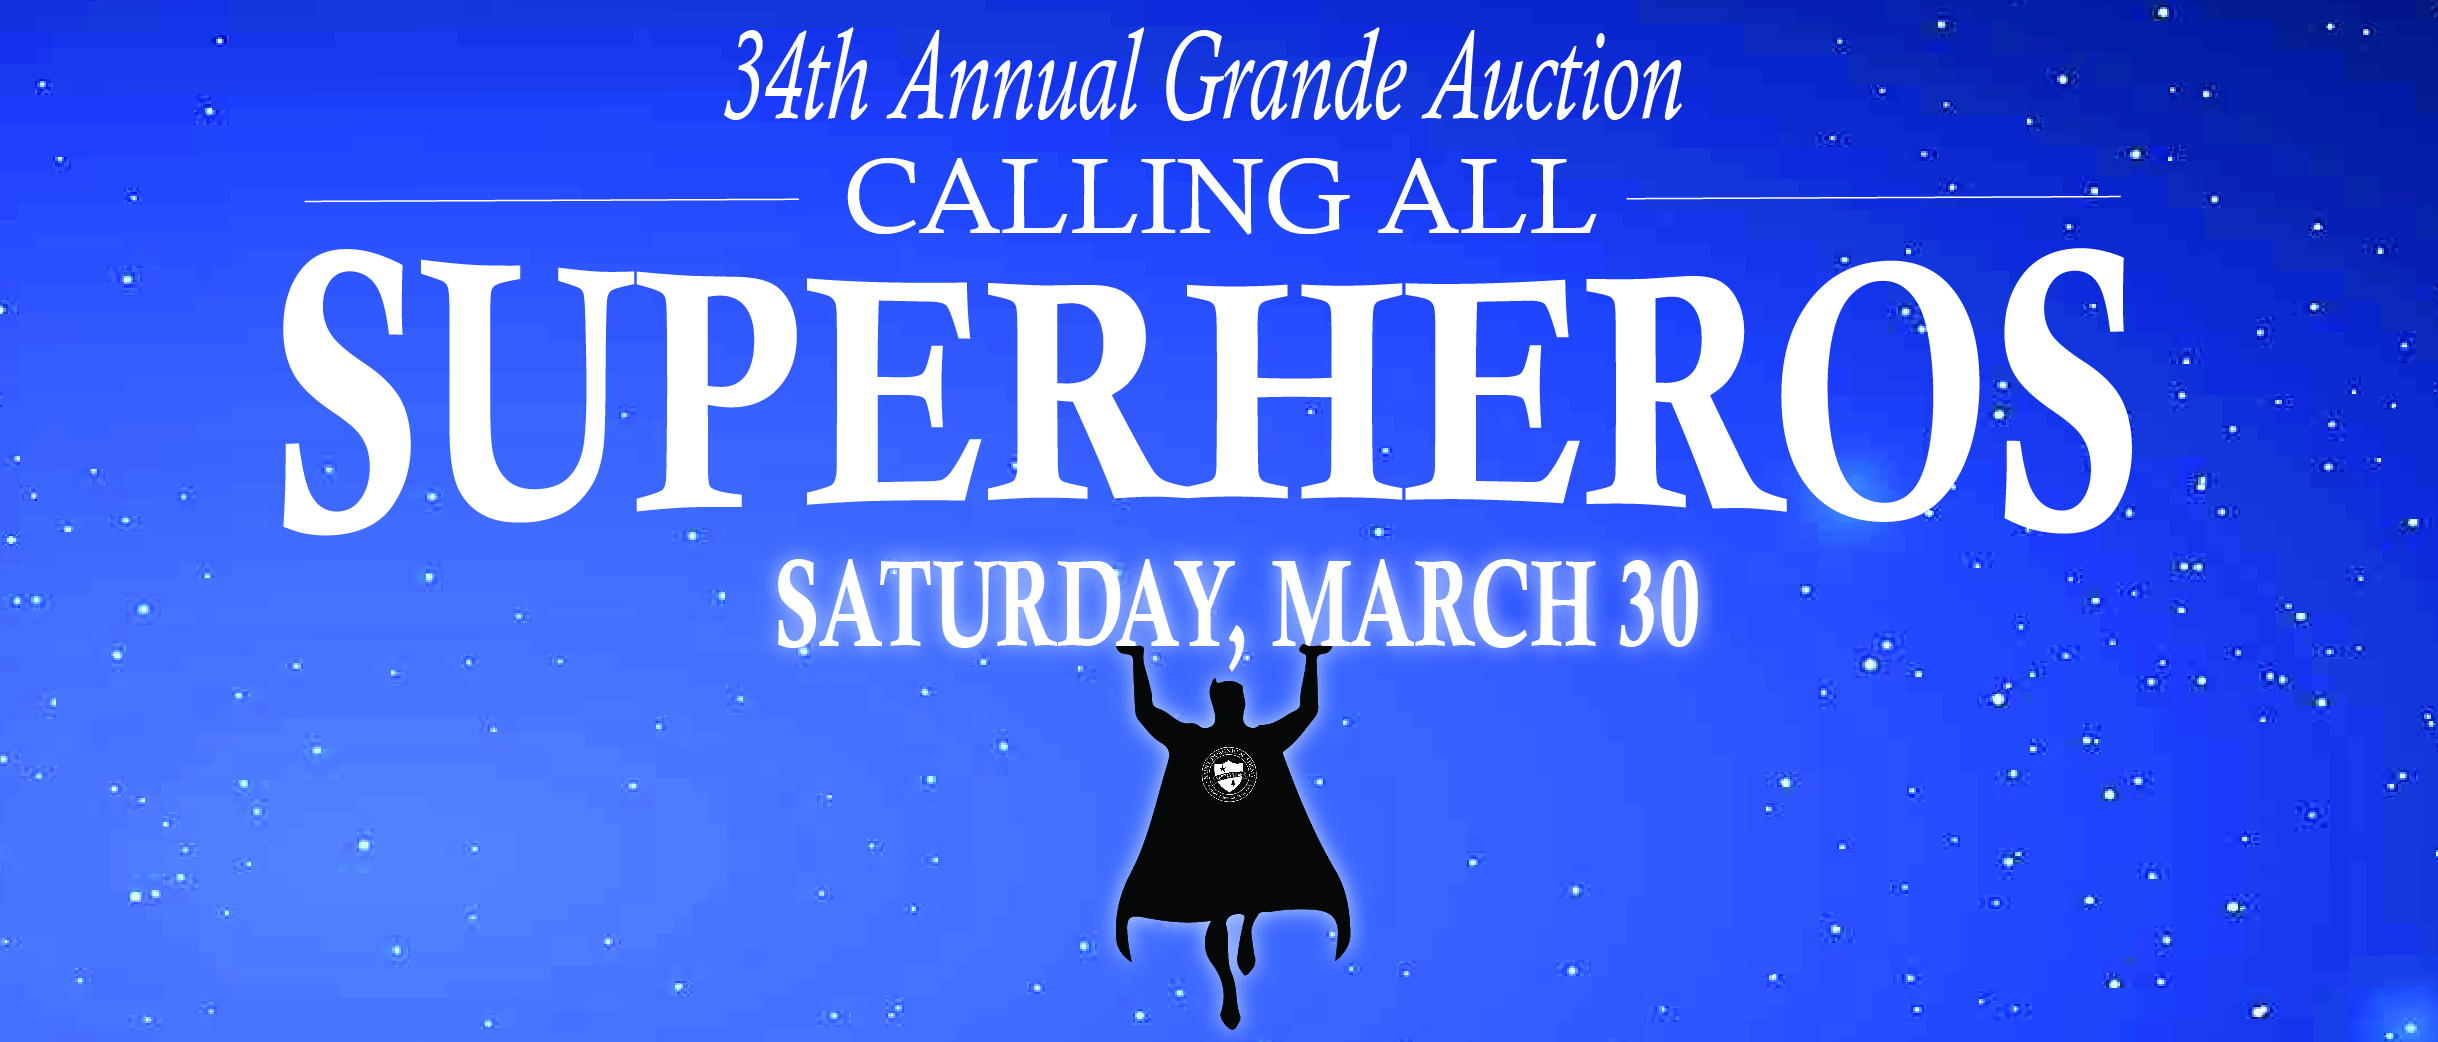 34th Annual Grande Auction